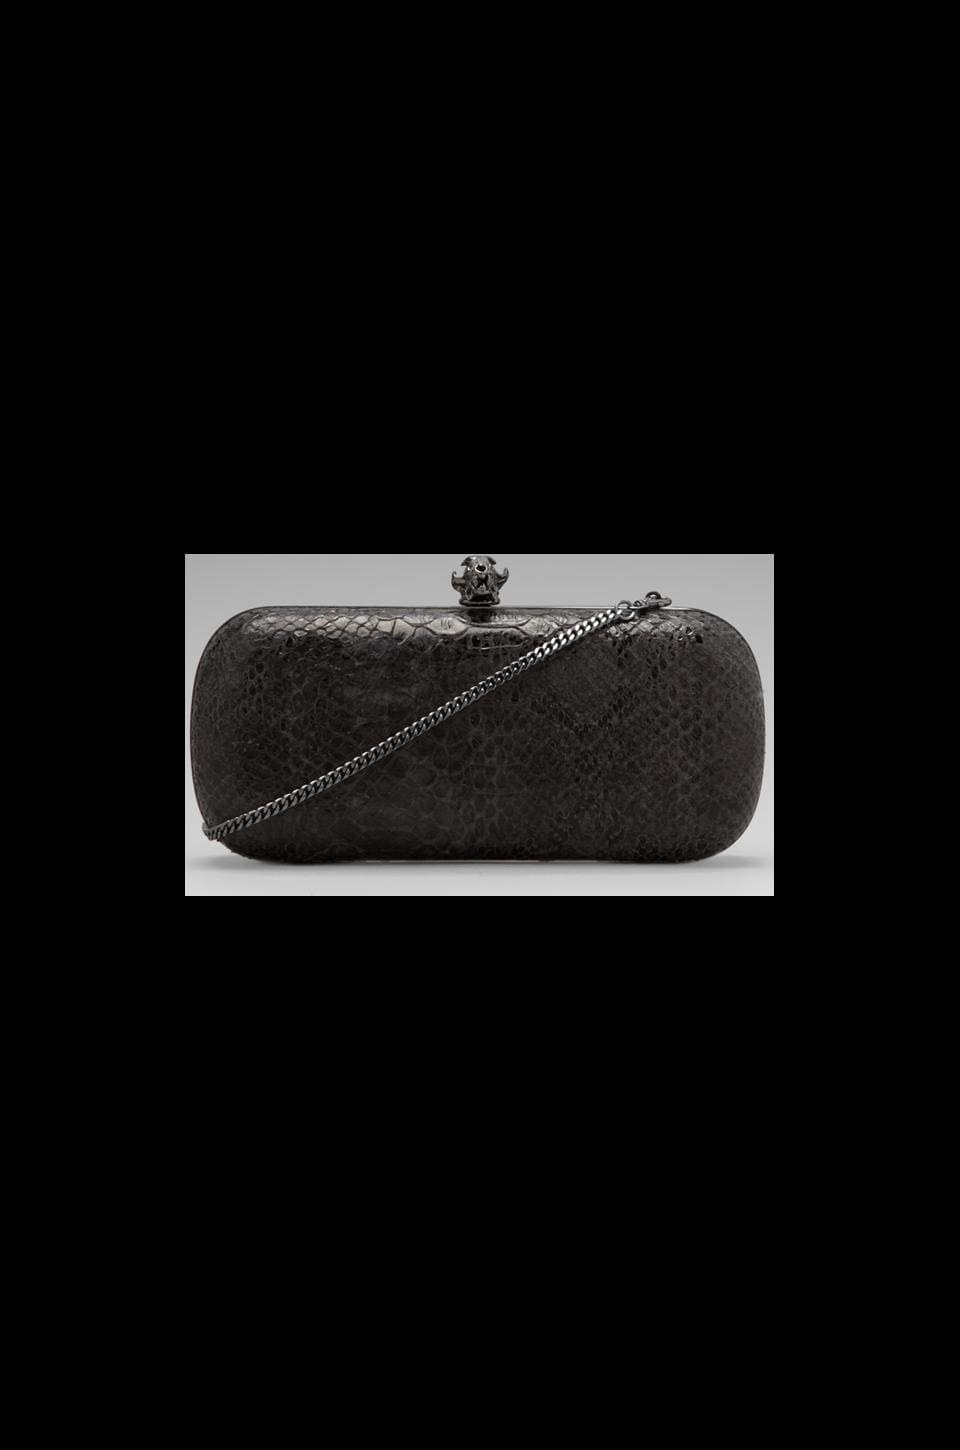 House of Harlow Wynn Clutch in Black/Grey Snake